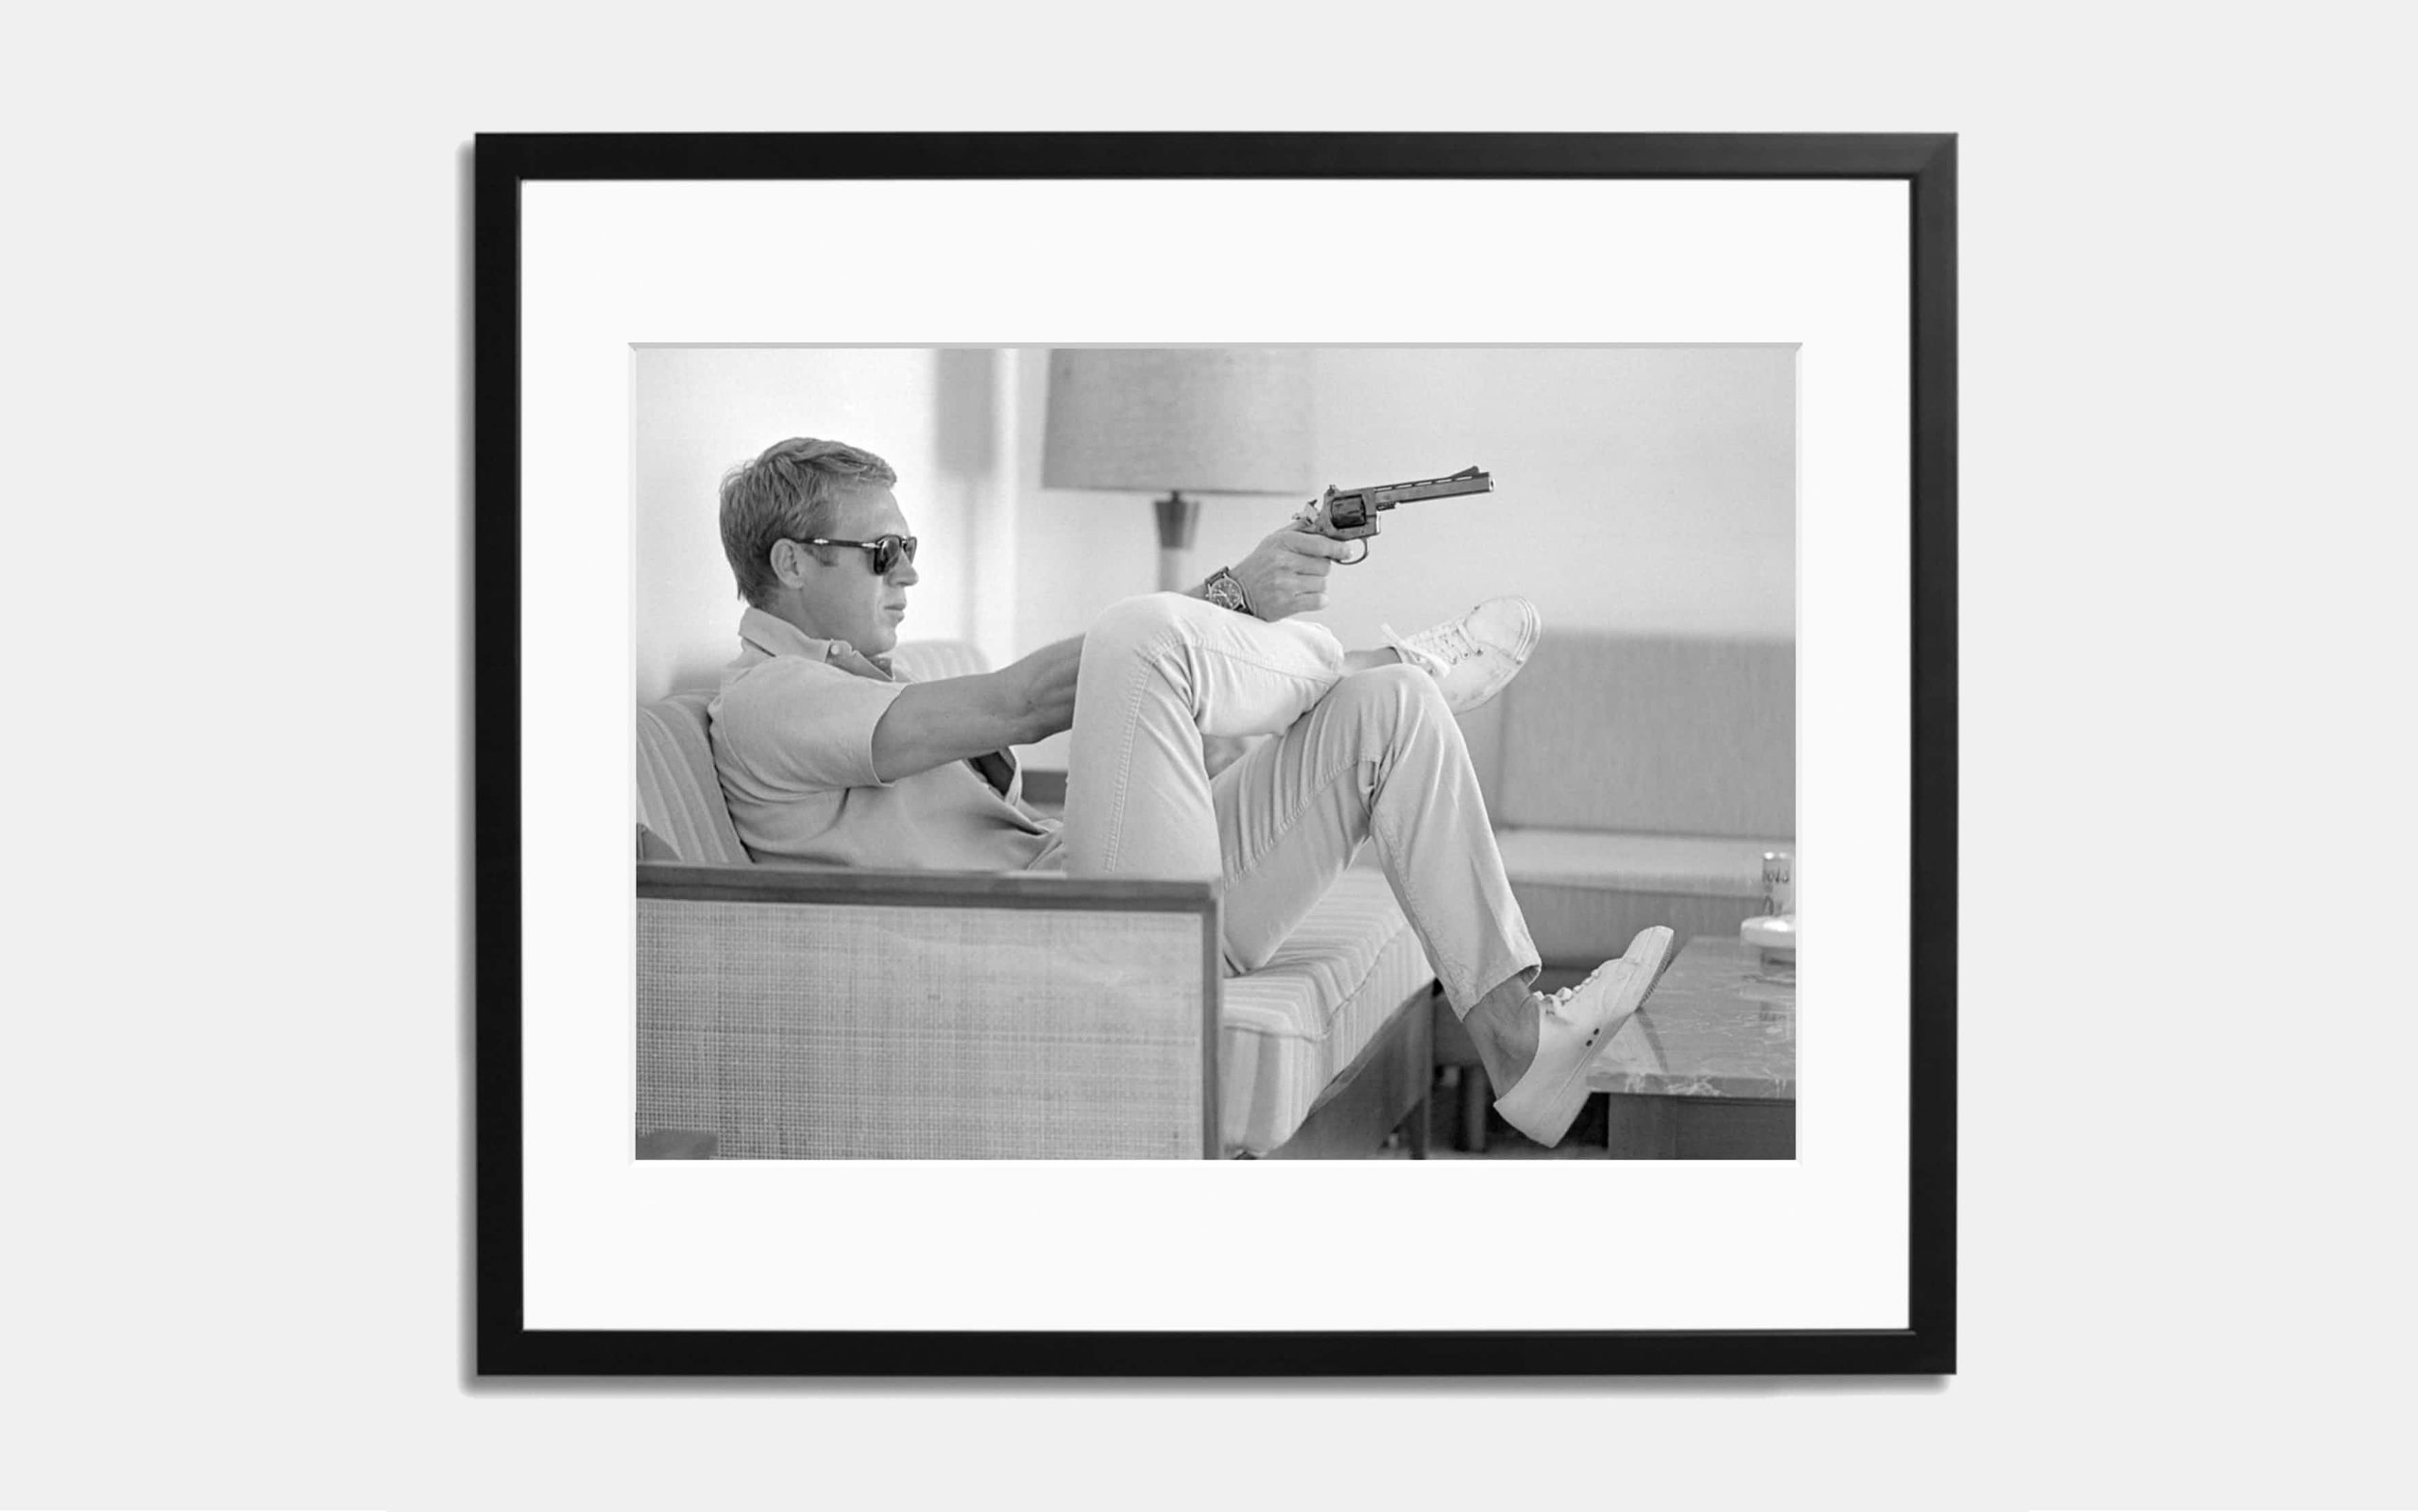 Steve McQueen #1 Limited Edition Print